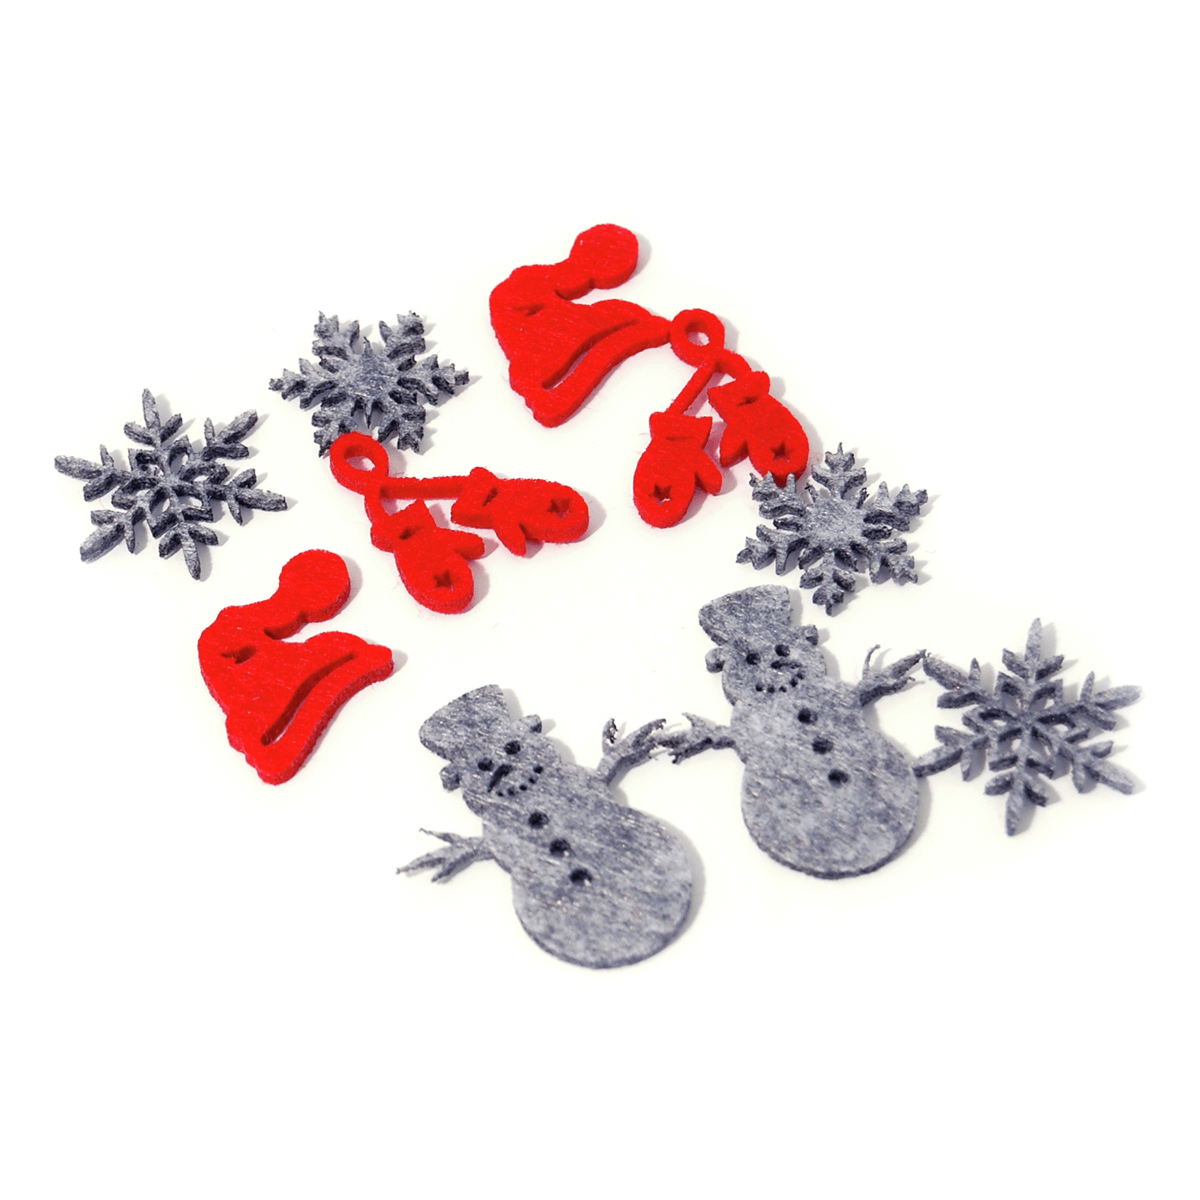 12 x Christmas Snowman Red/Grey Embellishments Craft